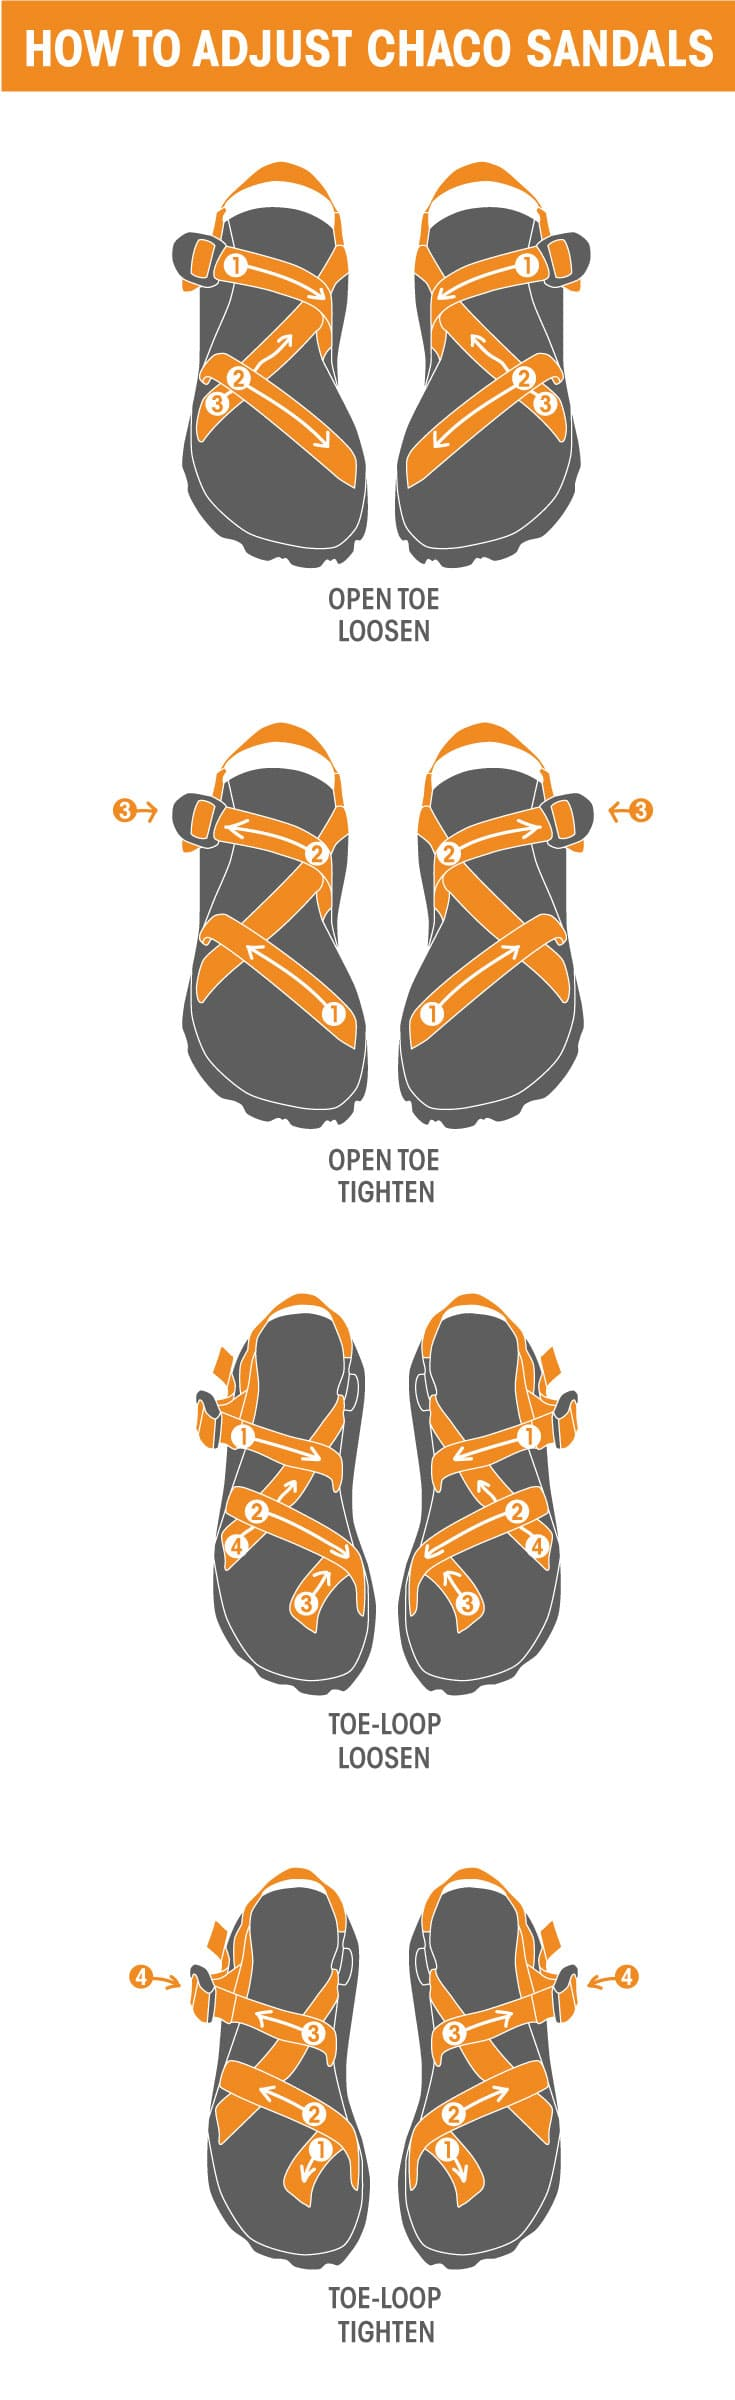 How to Adjust Chacos for a Snug, Comfortable Fit | Sierra ...